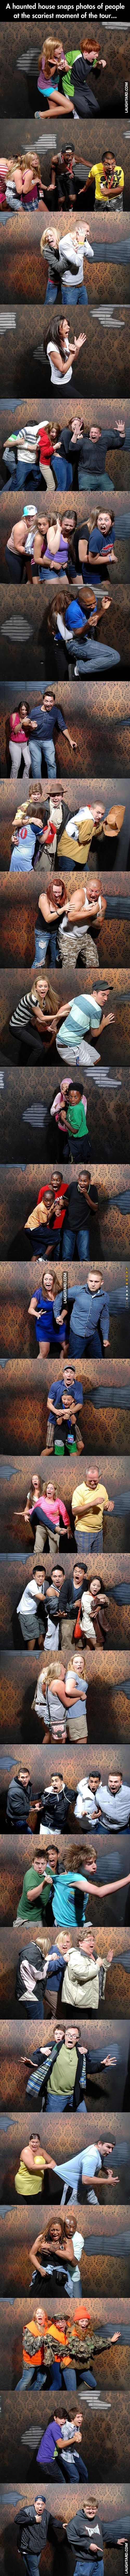 Haunted house snapping photos of the scariest moments. | Laughtard